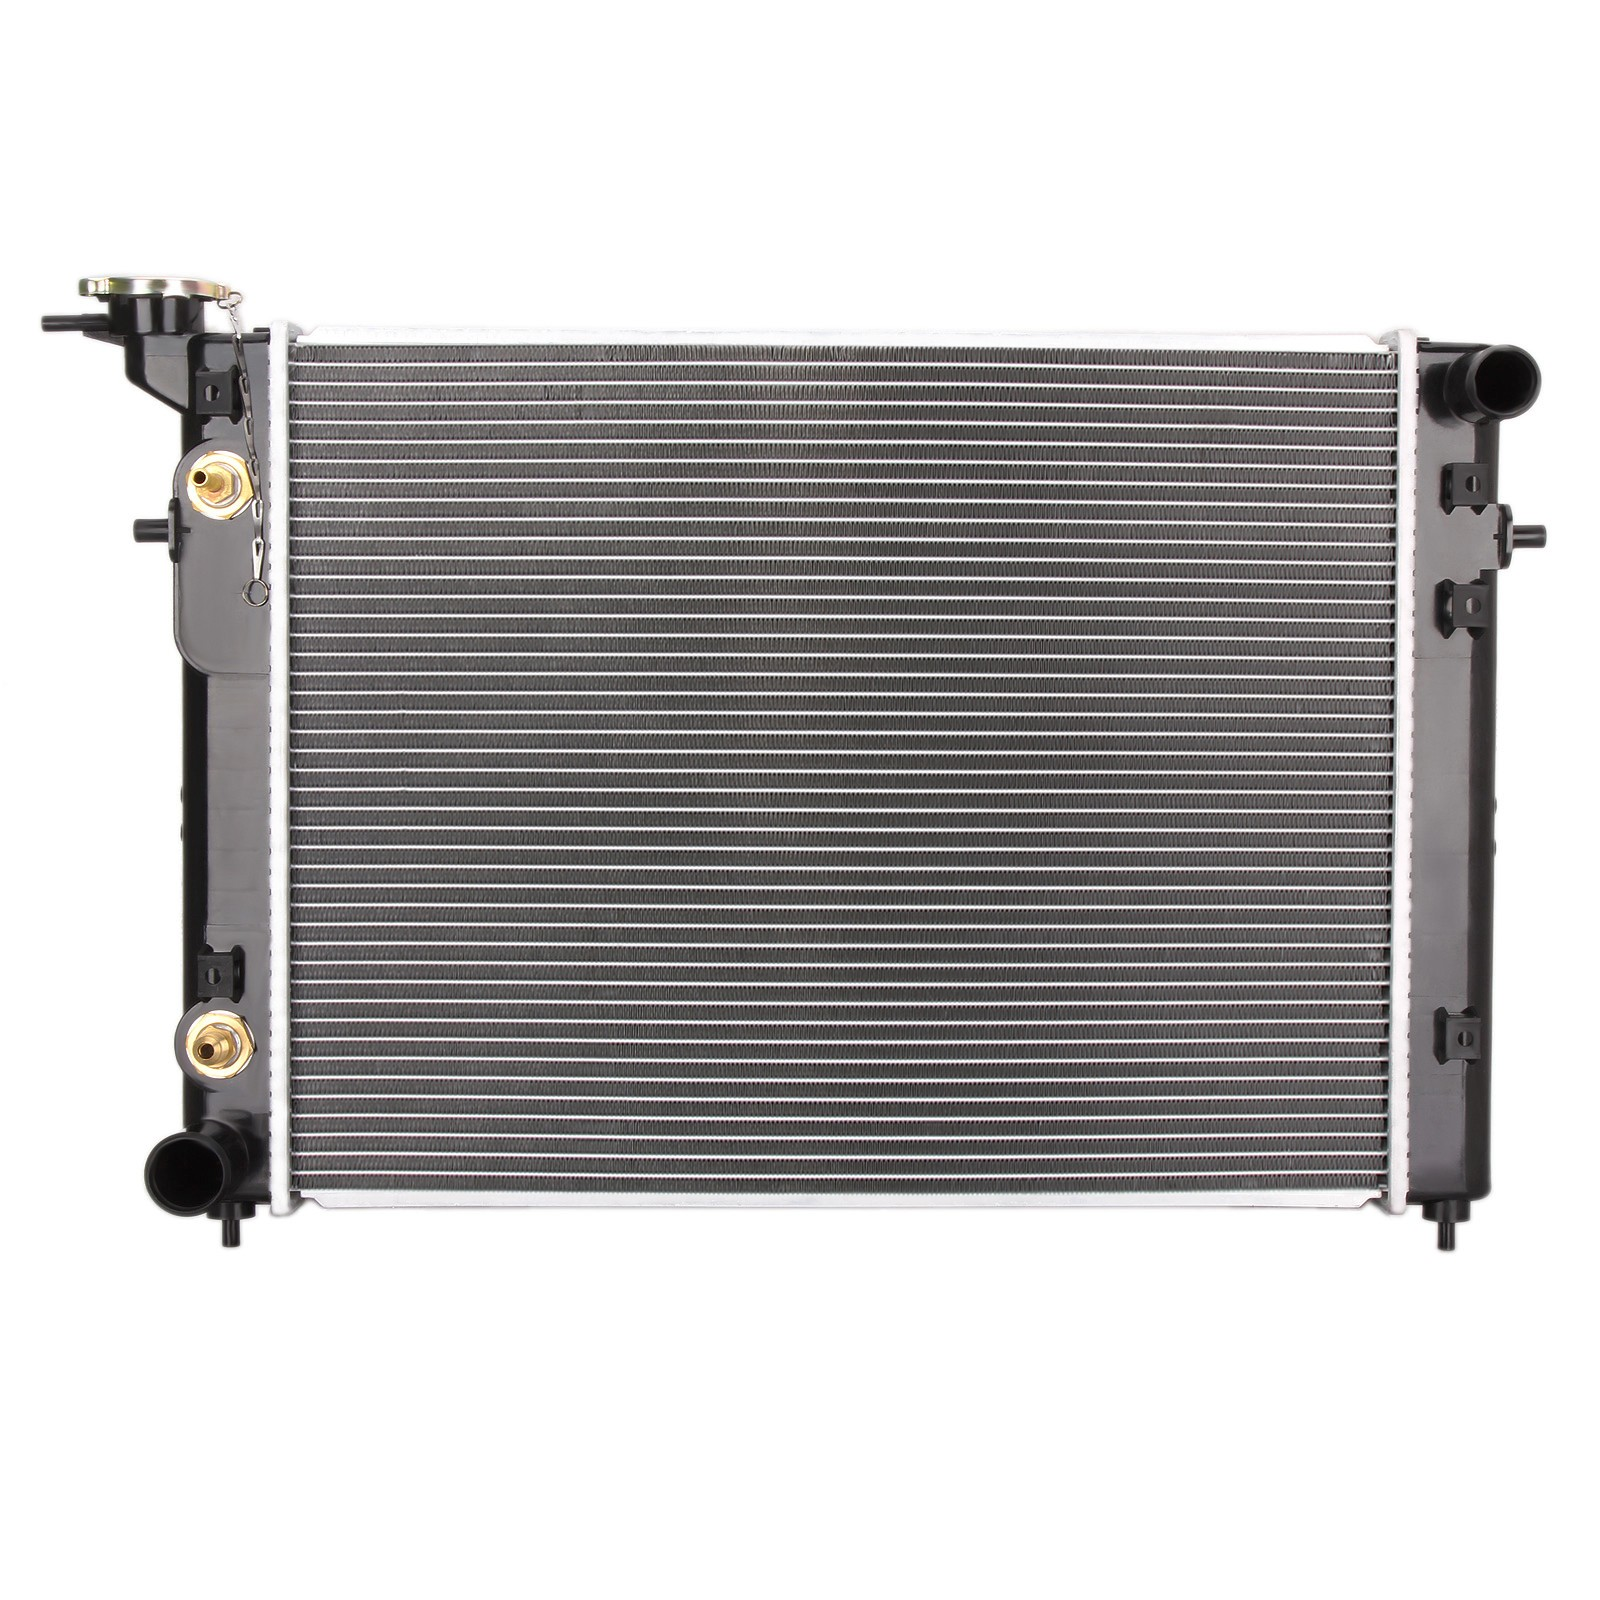 Dromedary-Car Premium Radiator For Holden Commodore Vn Vg Vp Vr Vs Series V6 Engine-2